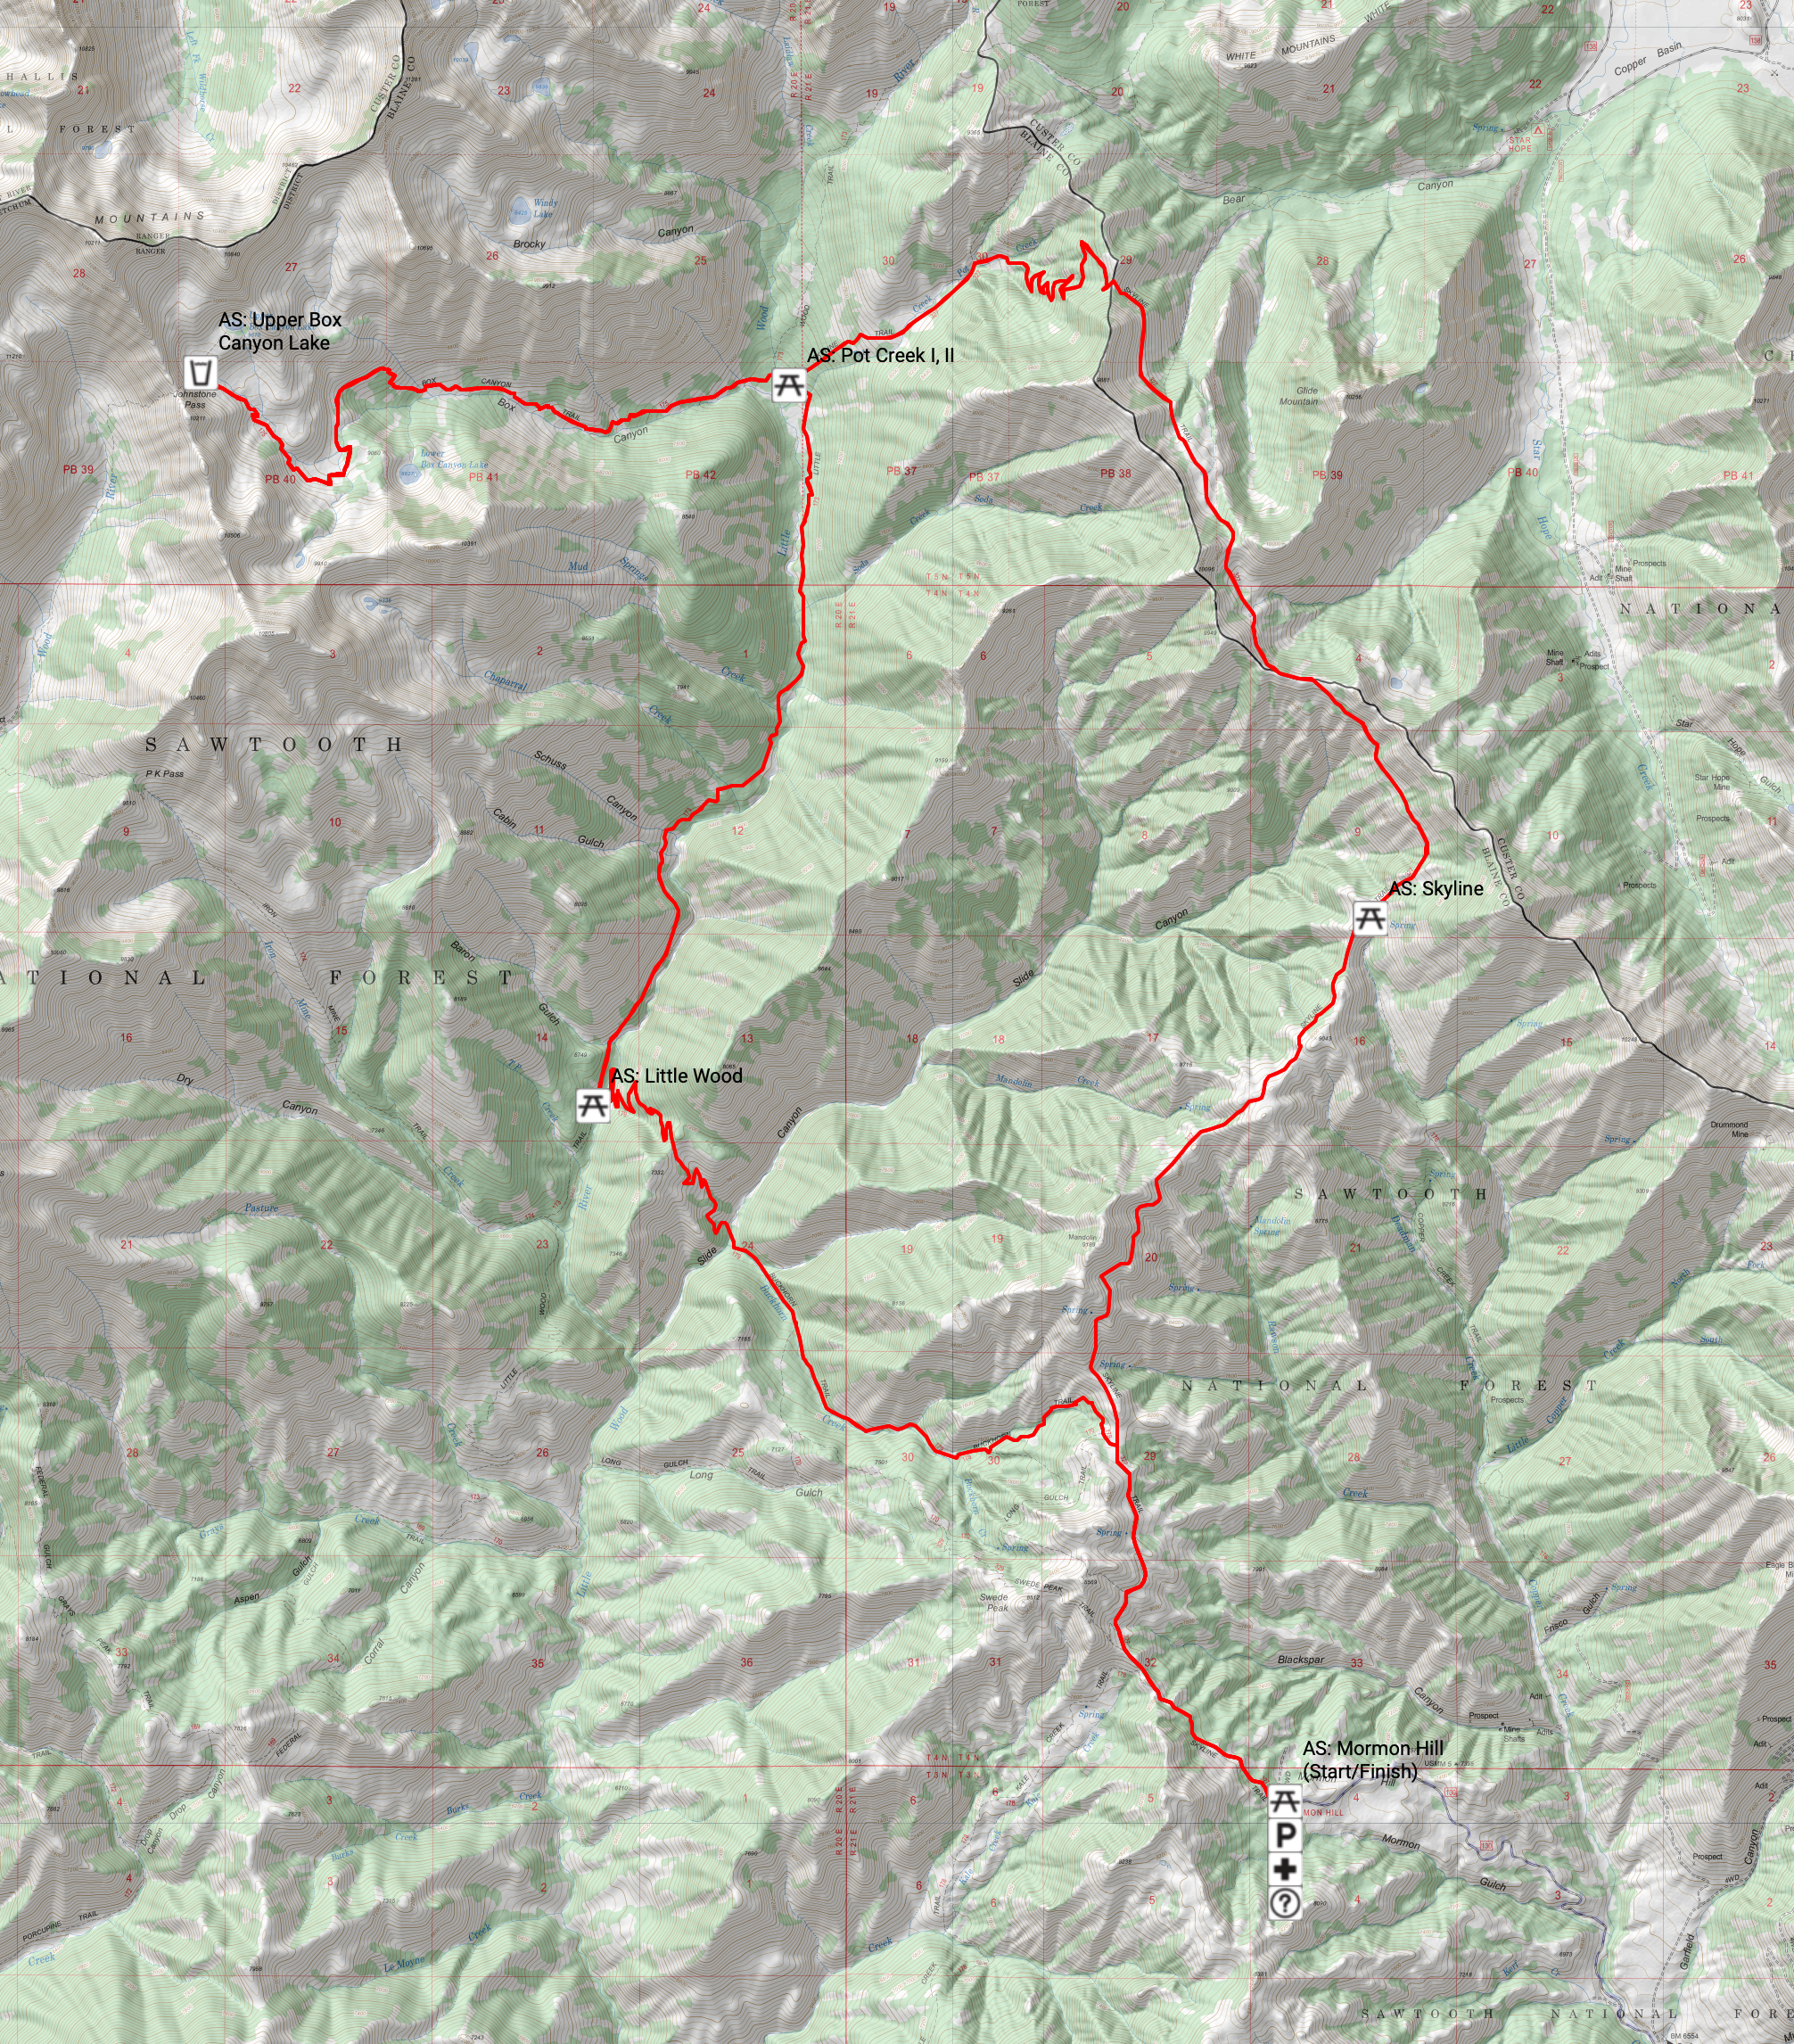 Triumph 50K course route. Click to take a closer look.